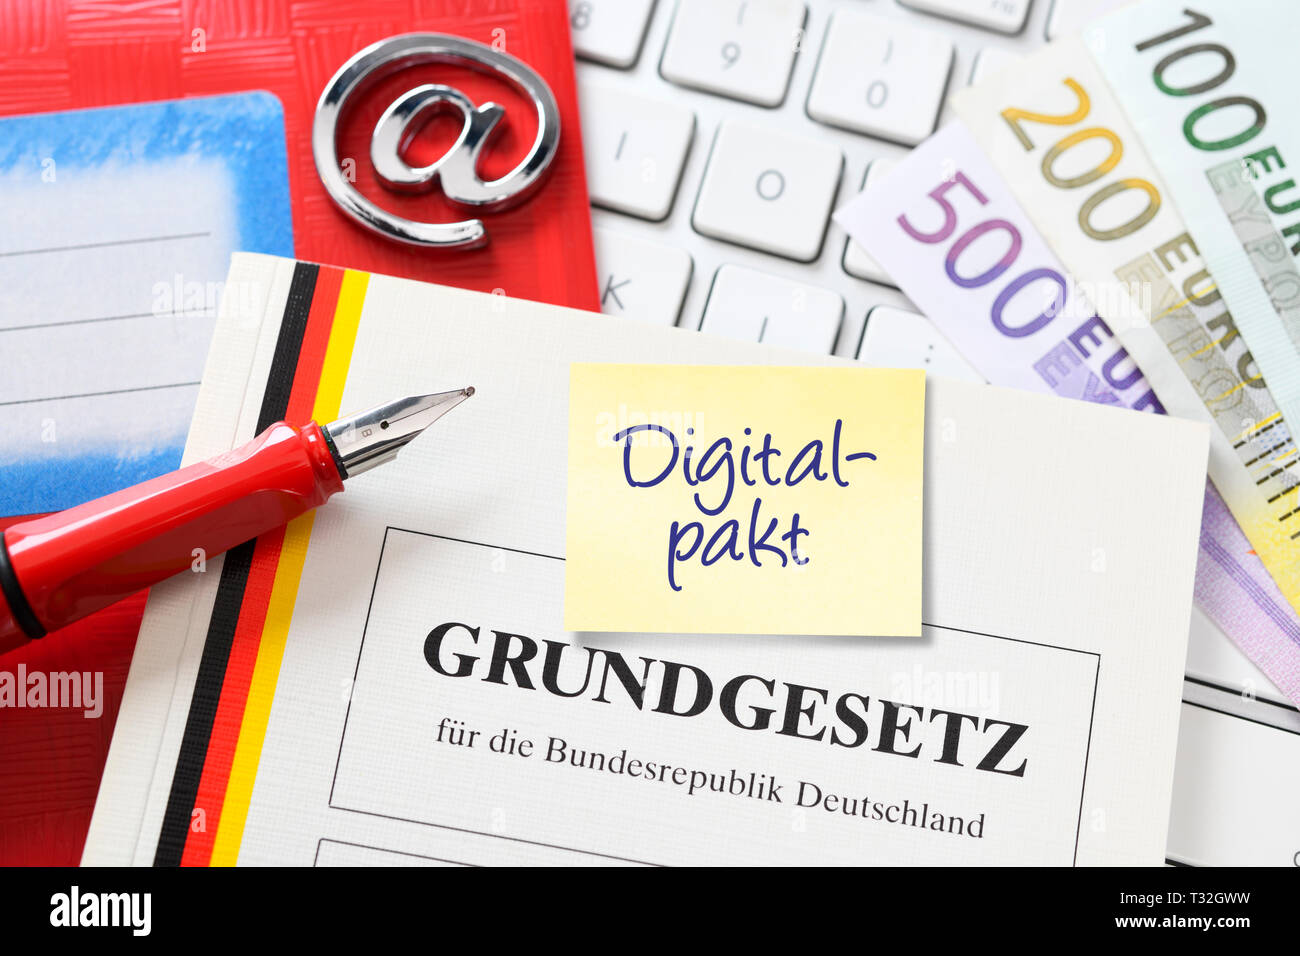 PHOTOMONTAGE, school book, computer keyboard, at-sign, bank notes and basic law, symbolic photo digital pact, FOTOMONTAGE, Schulbuch, Computertastatur - Stock Image